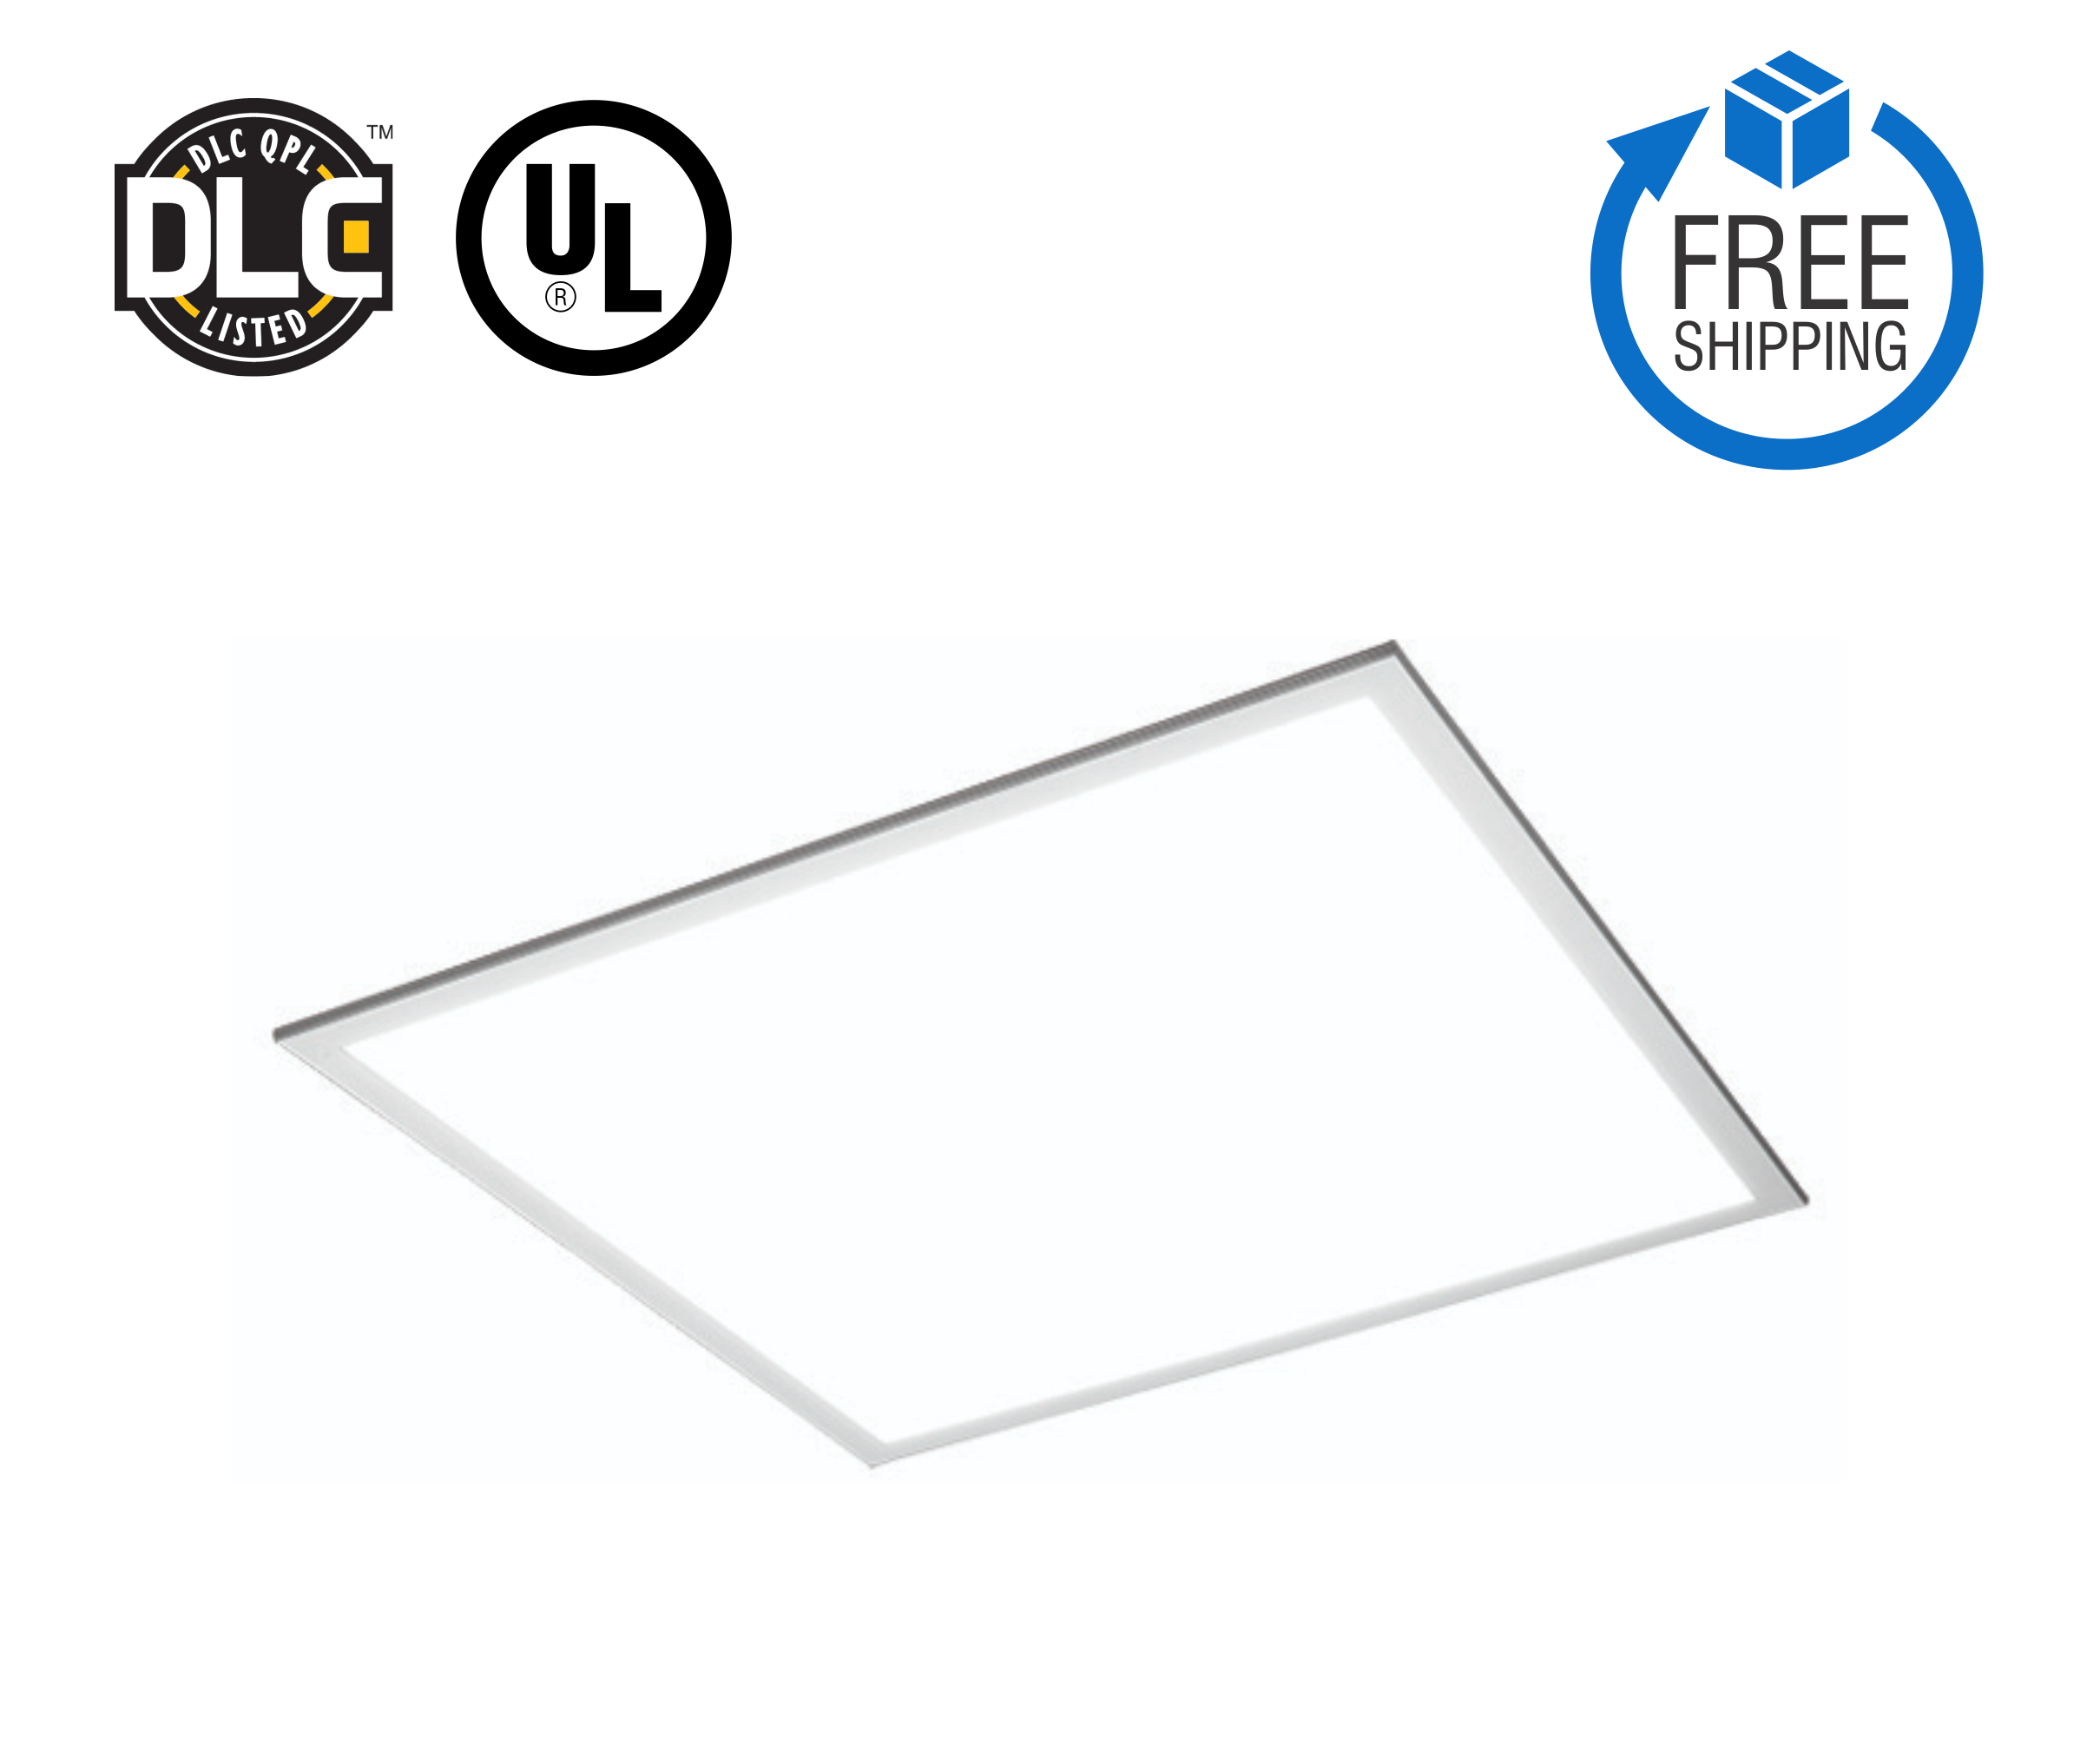 2x2 led panel 40w brightway led lighting